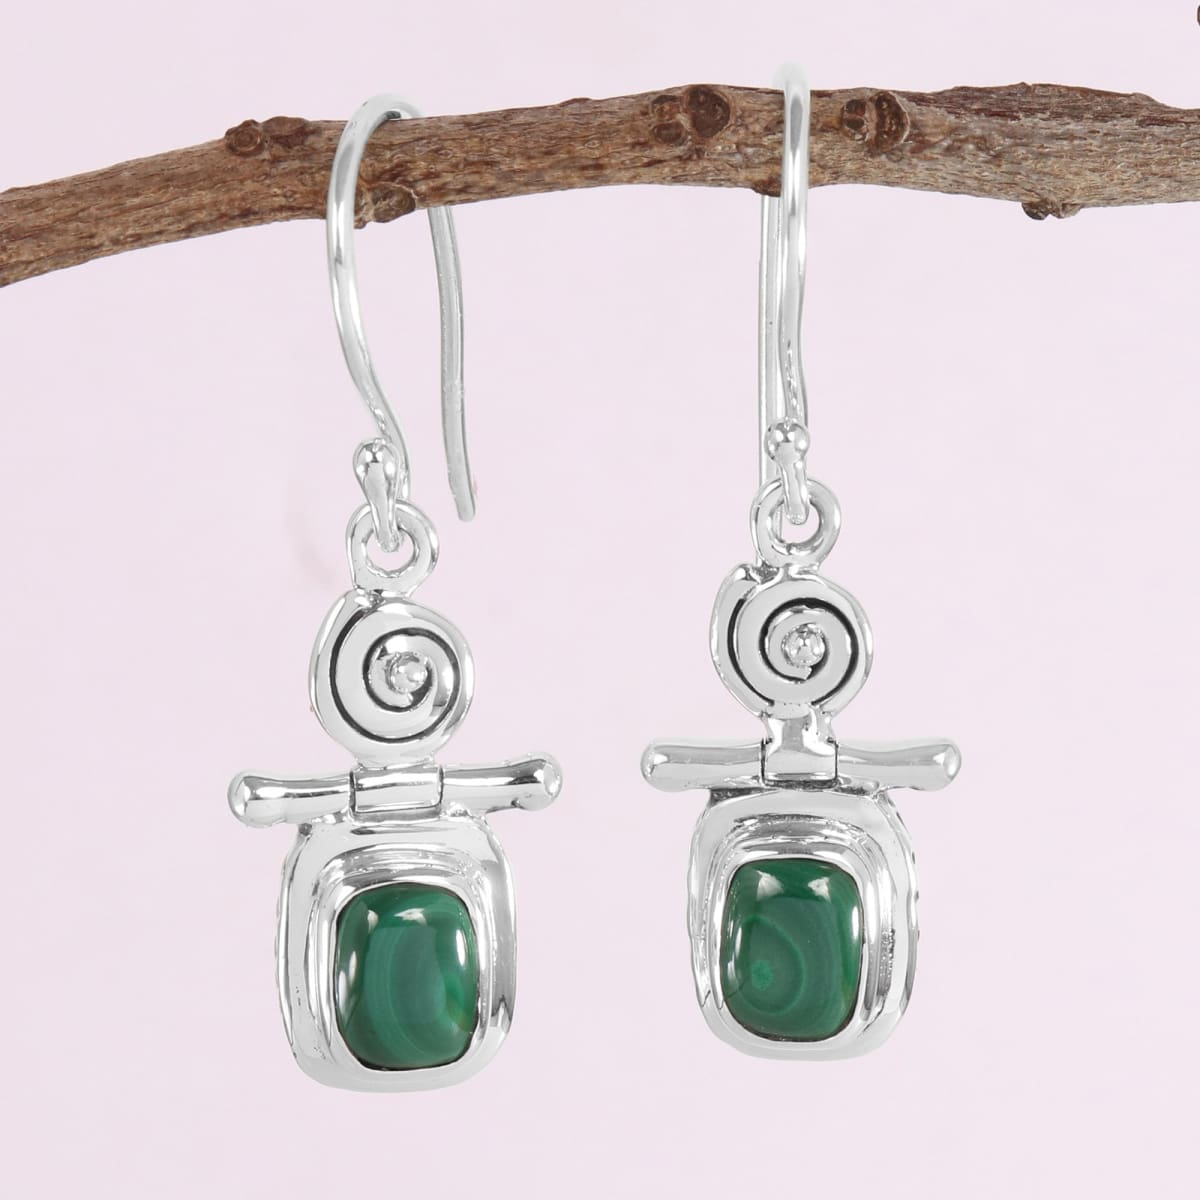 925 Sterling Silver Malachite Earring Vintage Style Gemstone Genuine Green Handmade Boho Women's Dangler